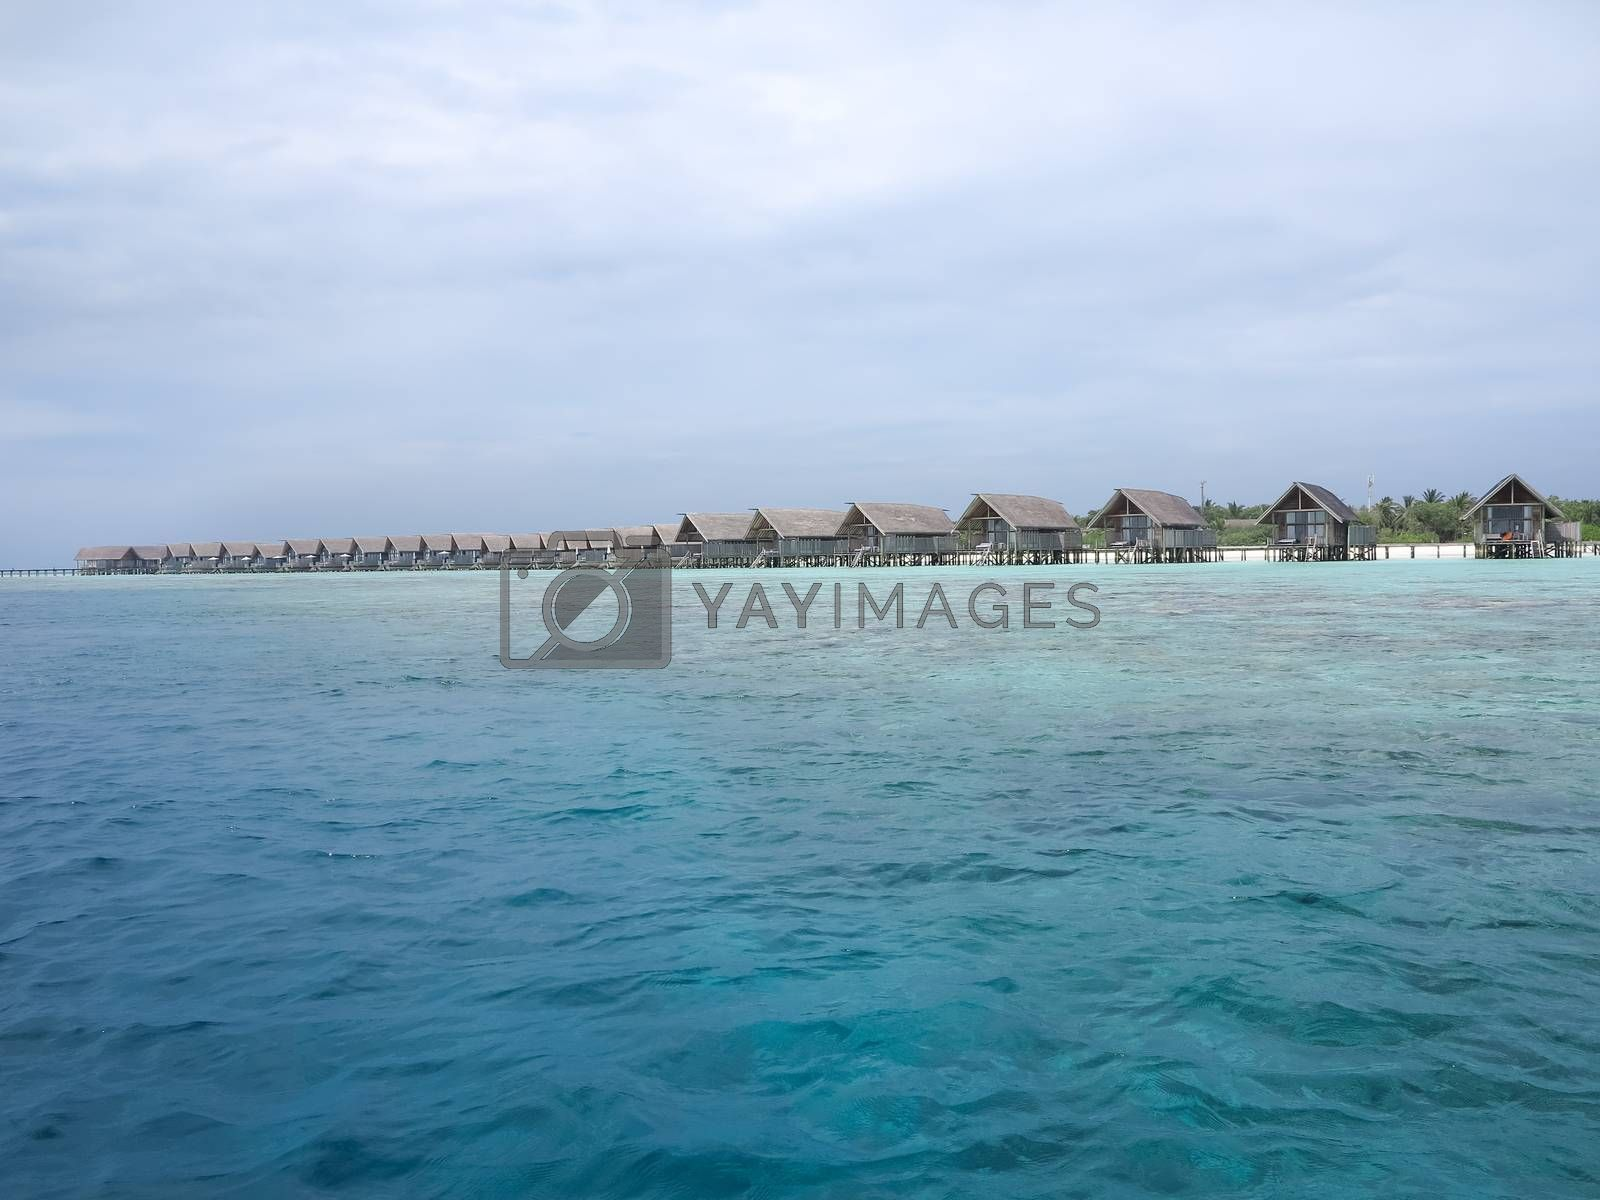 Beautiful view of water villas on island